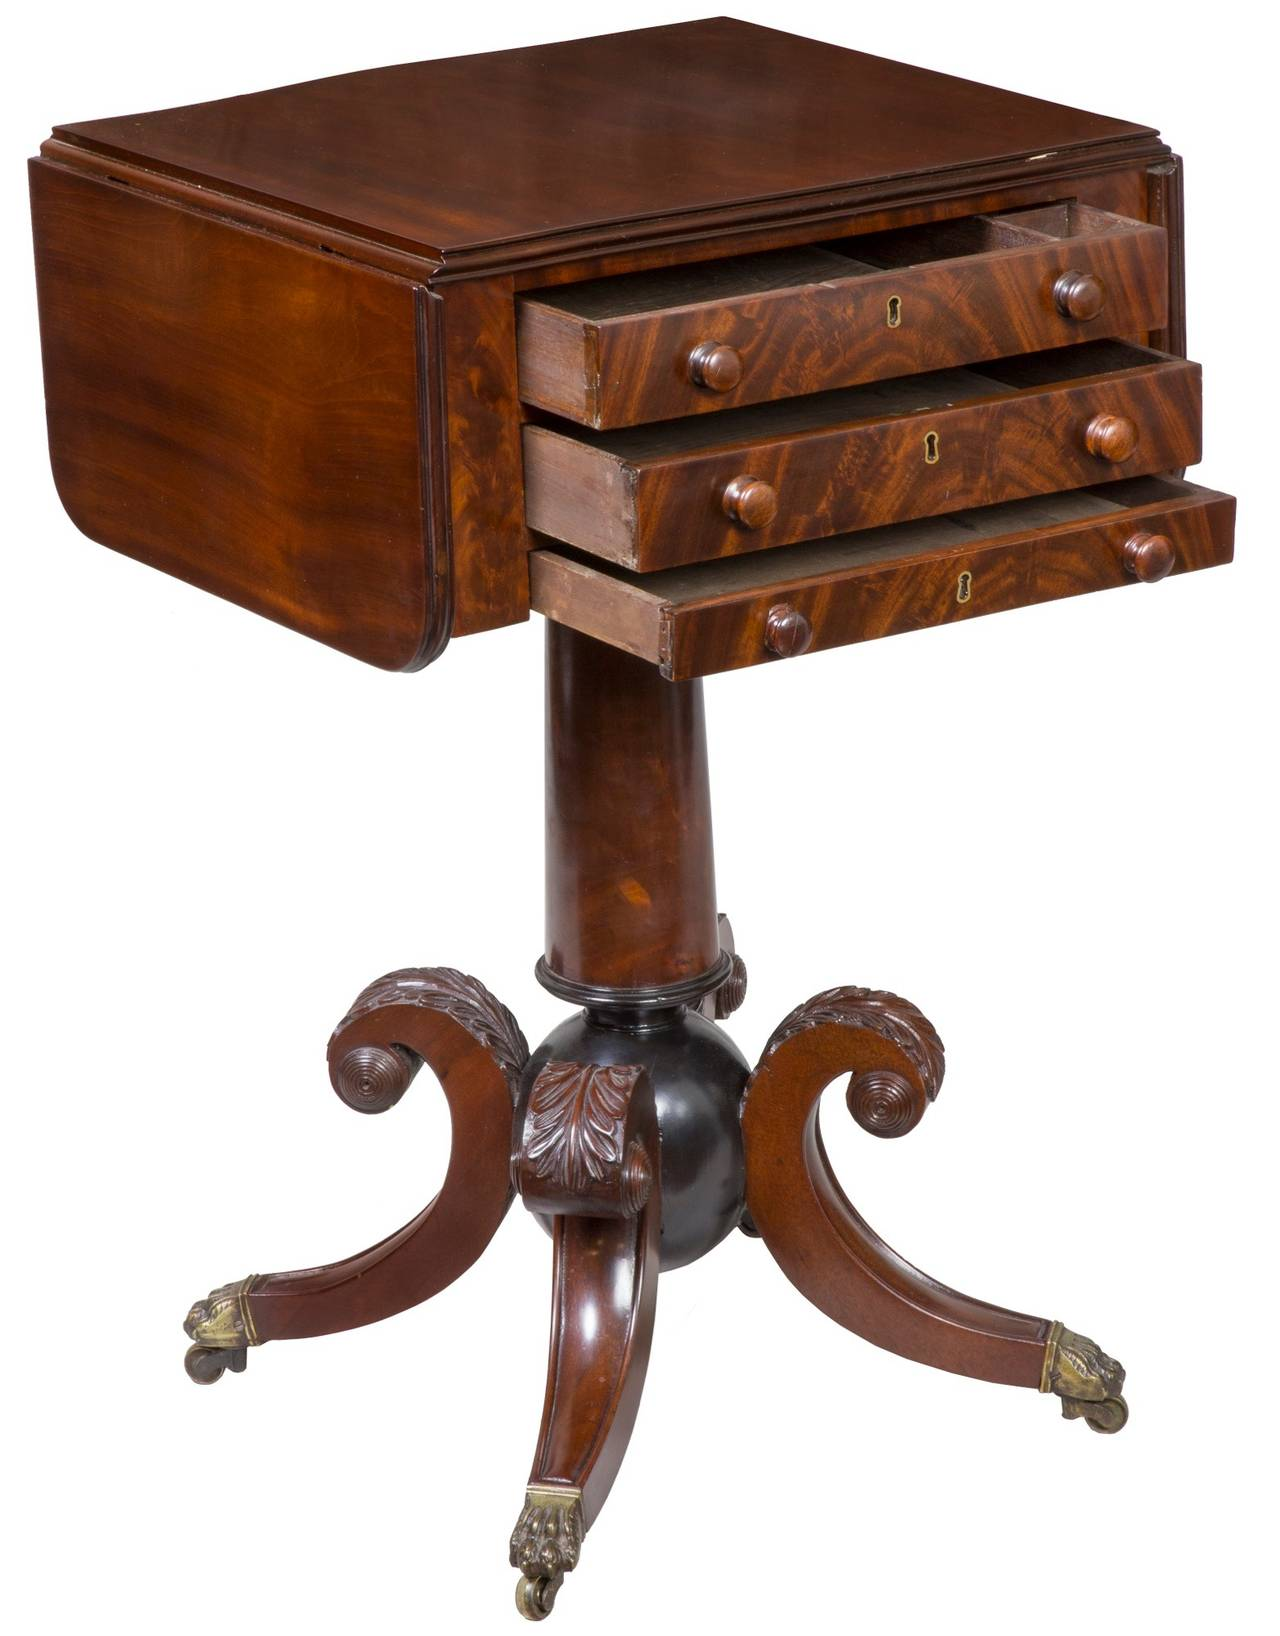 At this time in Boston, the classical form was being produced with design forms unrelated to other furniture being made in Boston or Philadelphia where the high style furniture market was. The cannon ball is an exuberant example of this type of